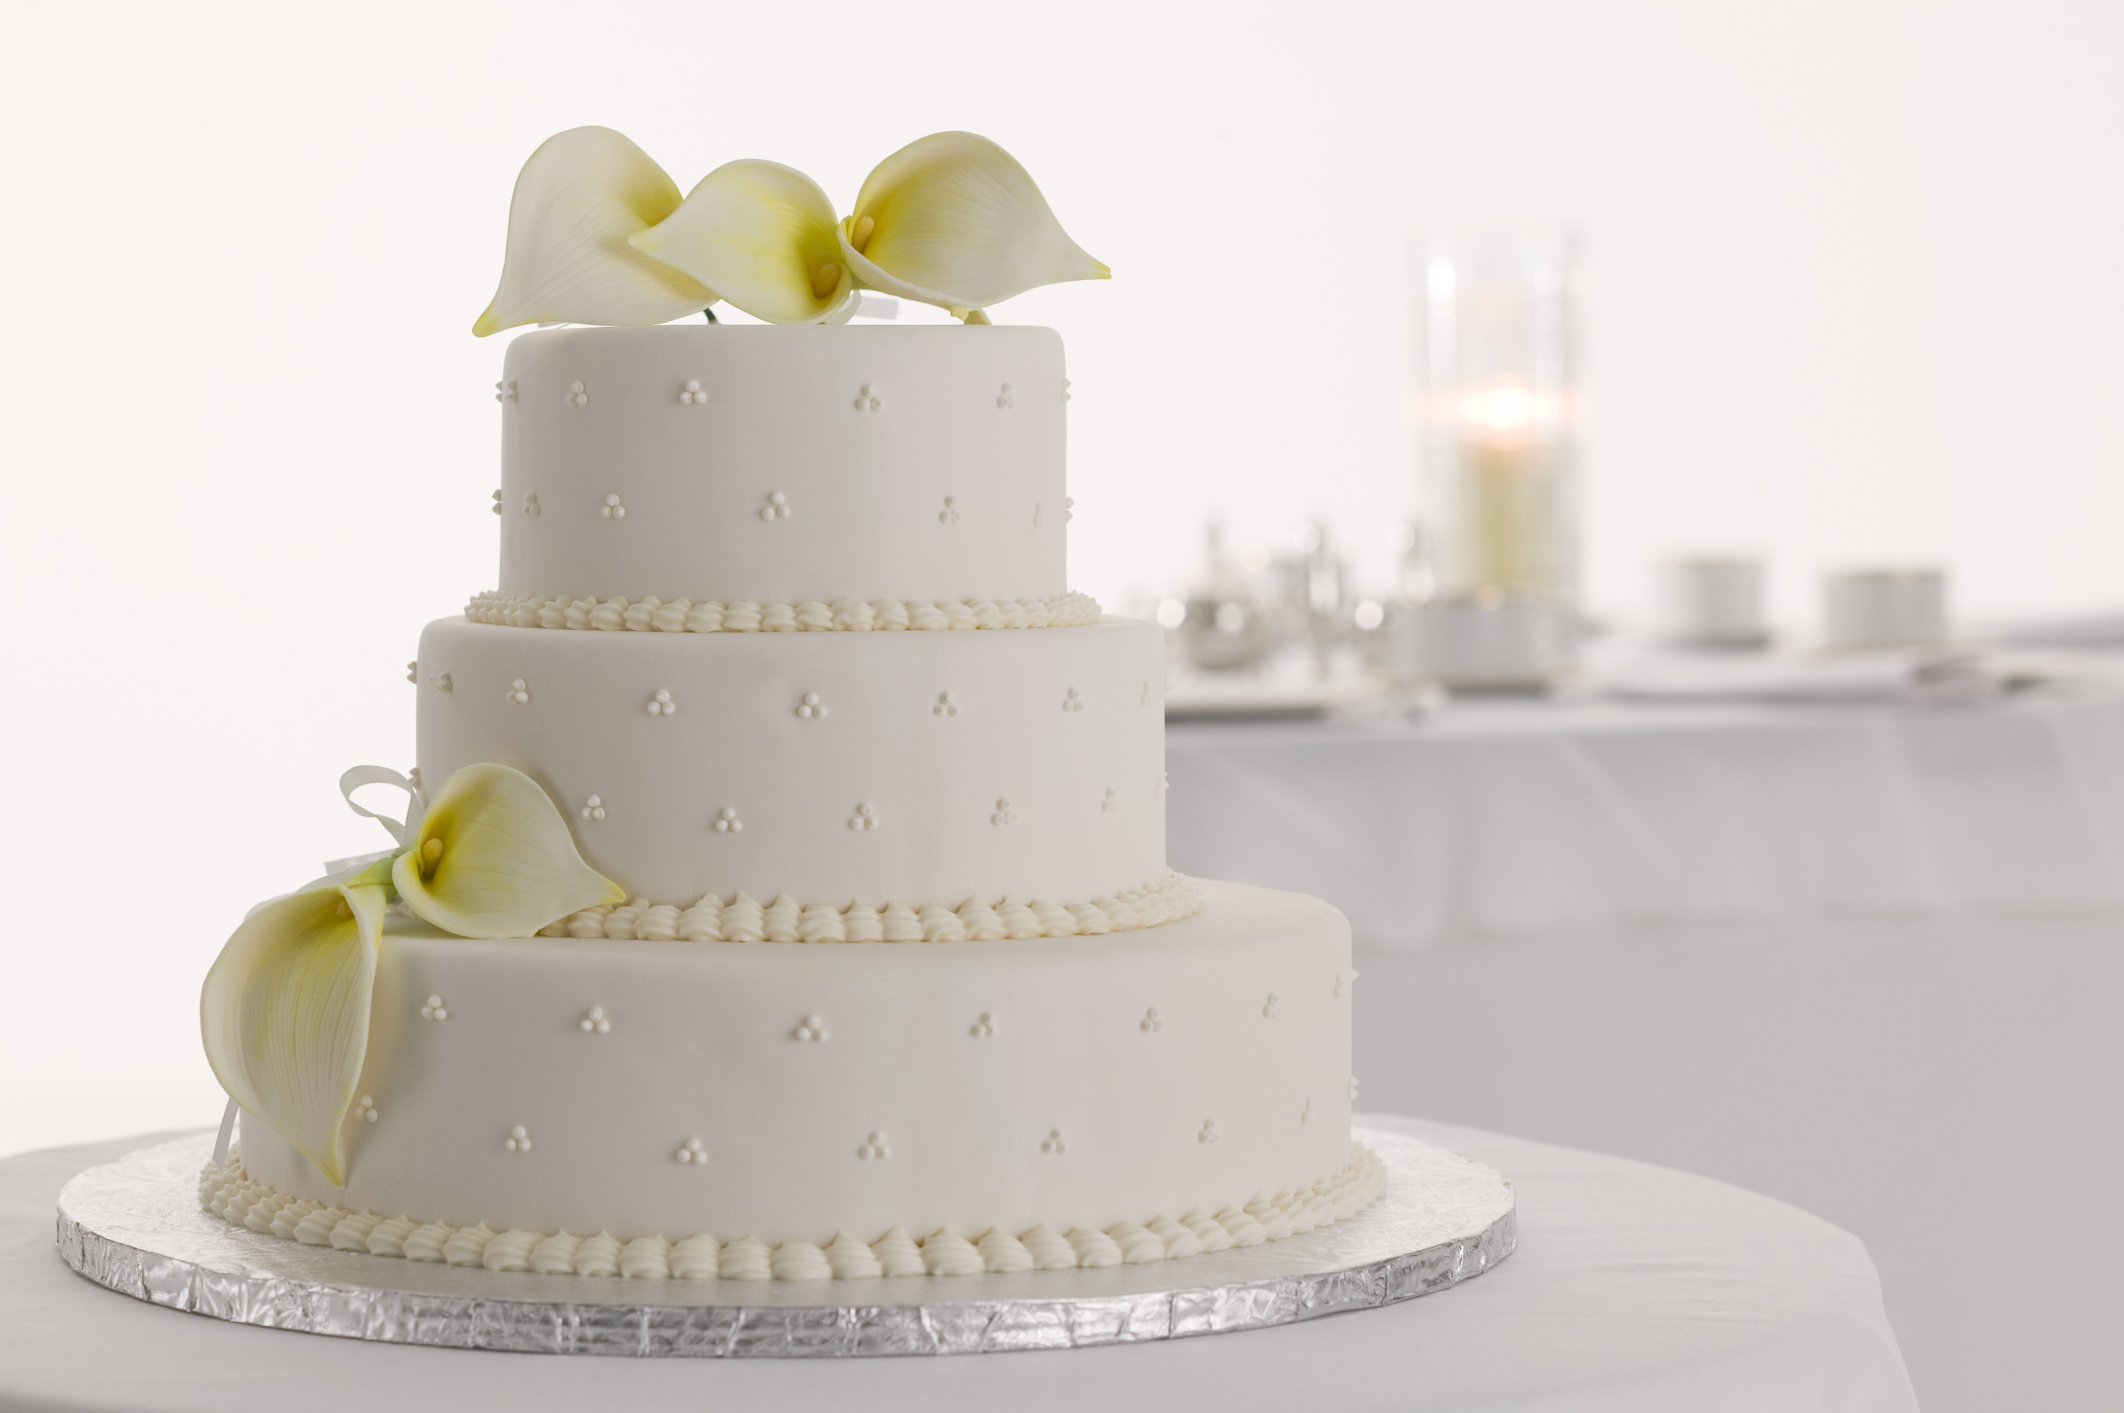 Tasting wedding cakes - Articles - Easy Weddings